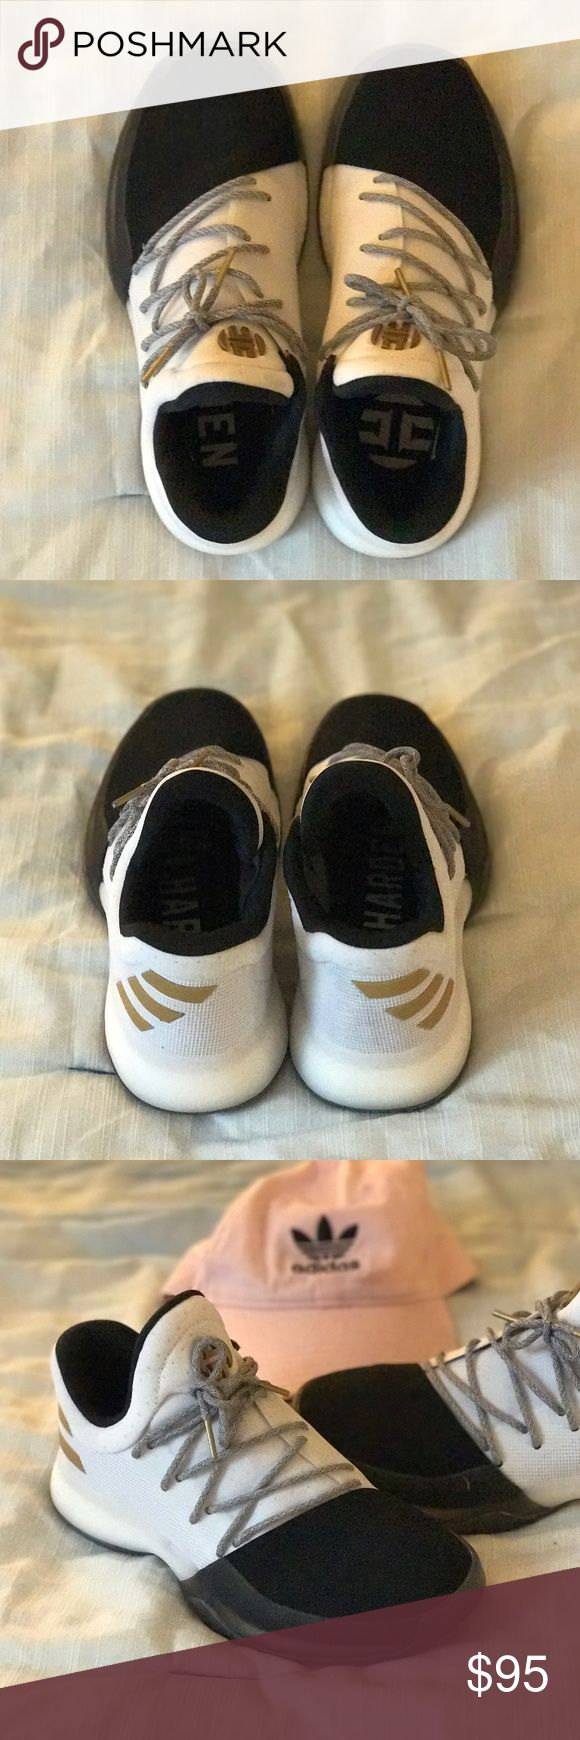 Harden Vol 1 Shoes Adidas Black and white James Harden Vol 1 Shoes. Only worn once, like new! Shoe is 5 1/2 in kids which is equivalent to a woman's US size 7 Adidas Shoes Athletic Shoes